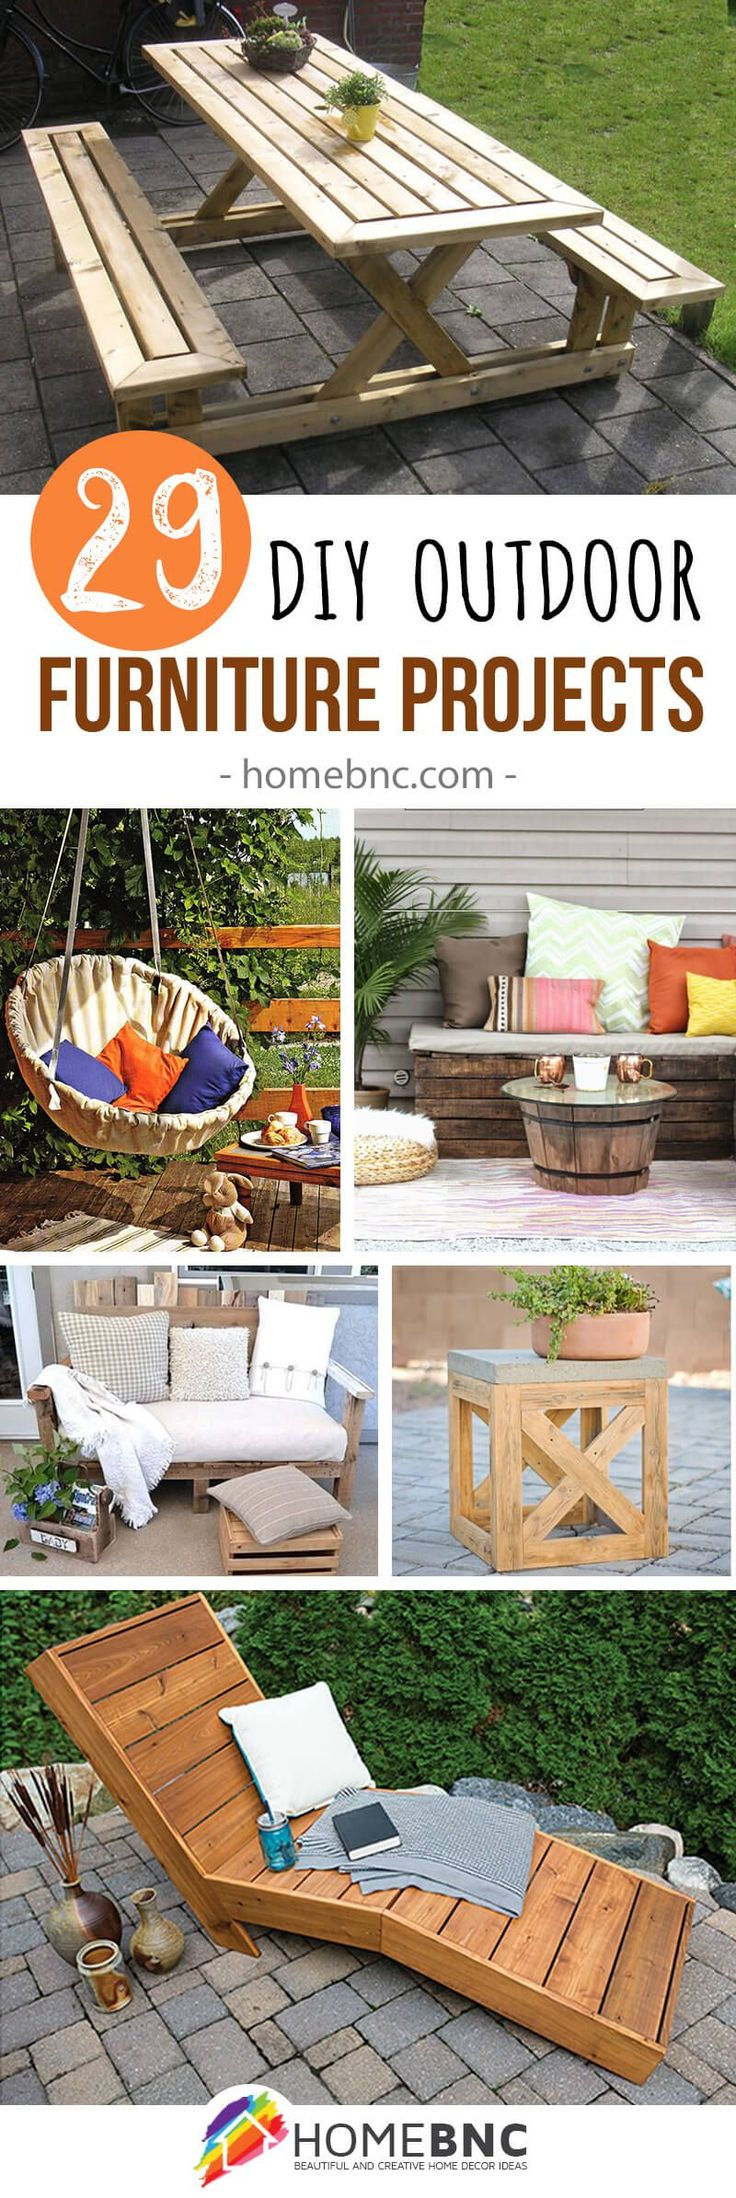 Best 25+ Outdoor Furniture Ideas On Pinterest | Diy Outdoor Furniture,  Designer Outdoor Furniture And Diy Garden Furniture